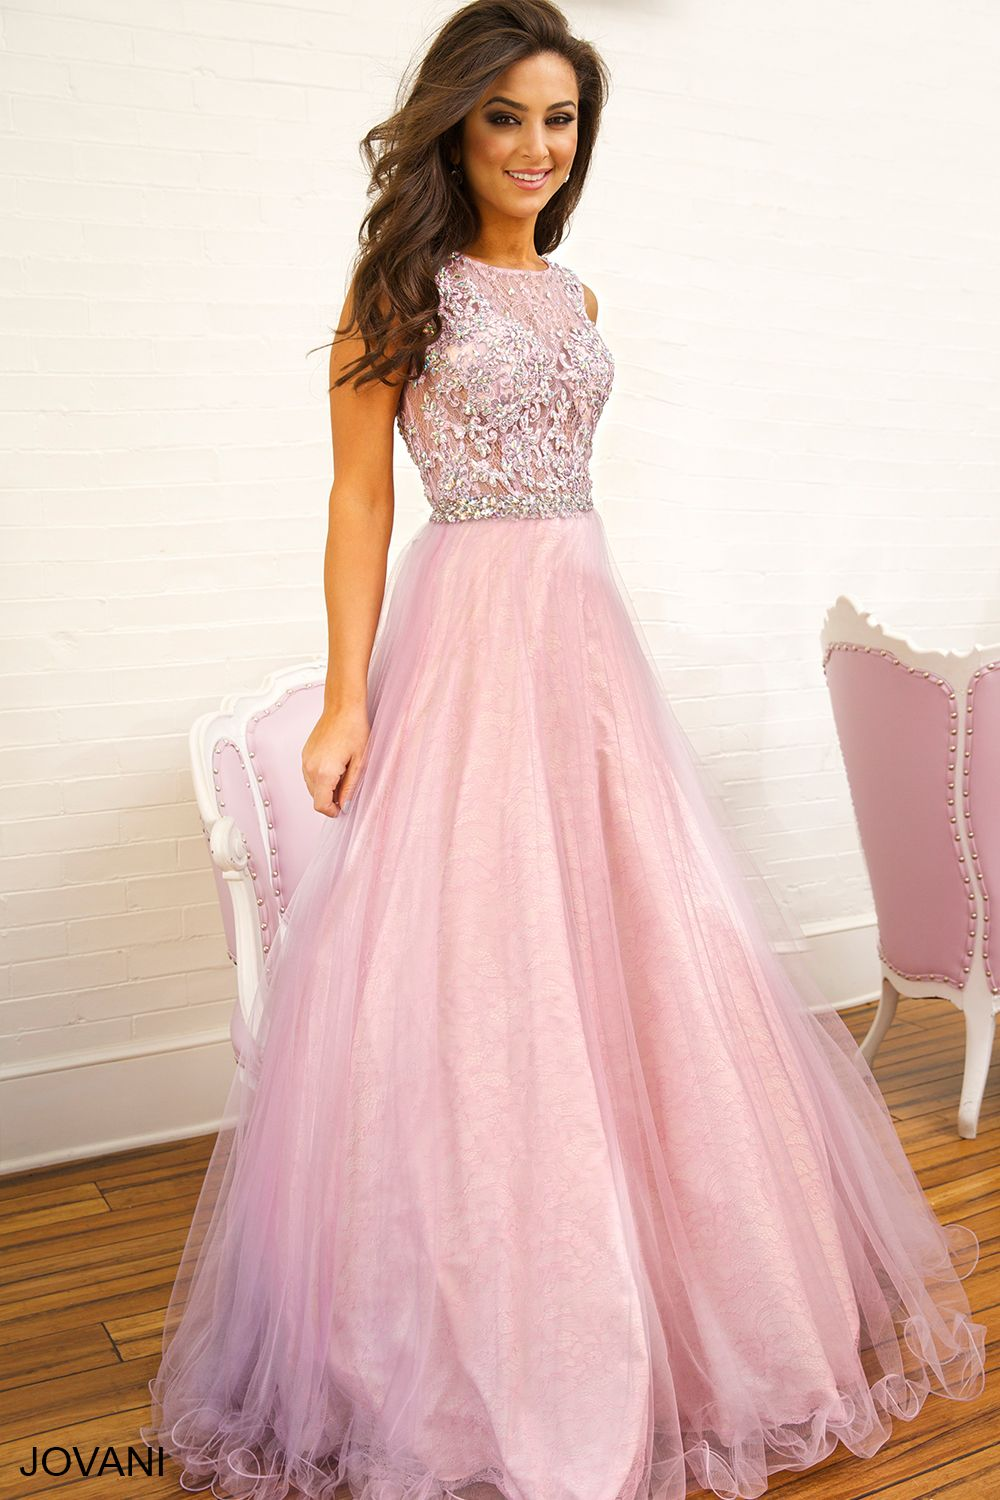 Purple Sleeveless Ballgown 92020 | Prom | Pinterest | Prom, Gowns ...